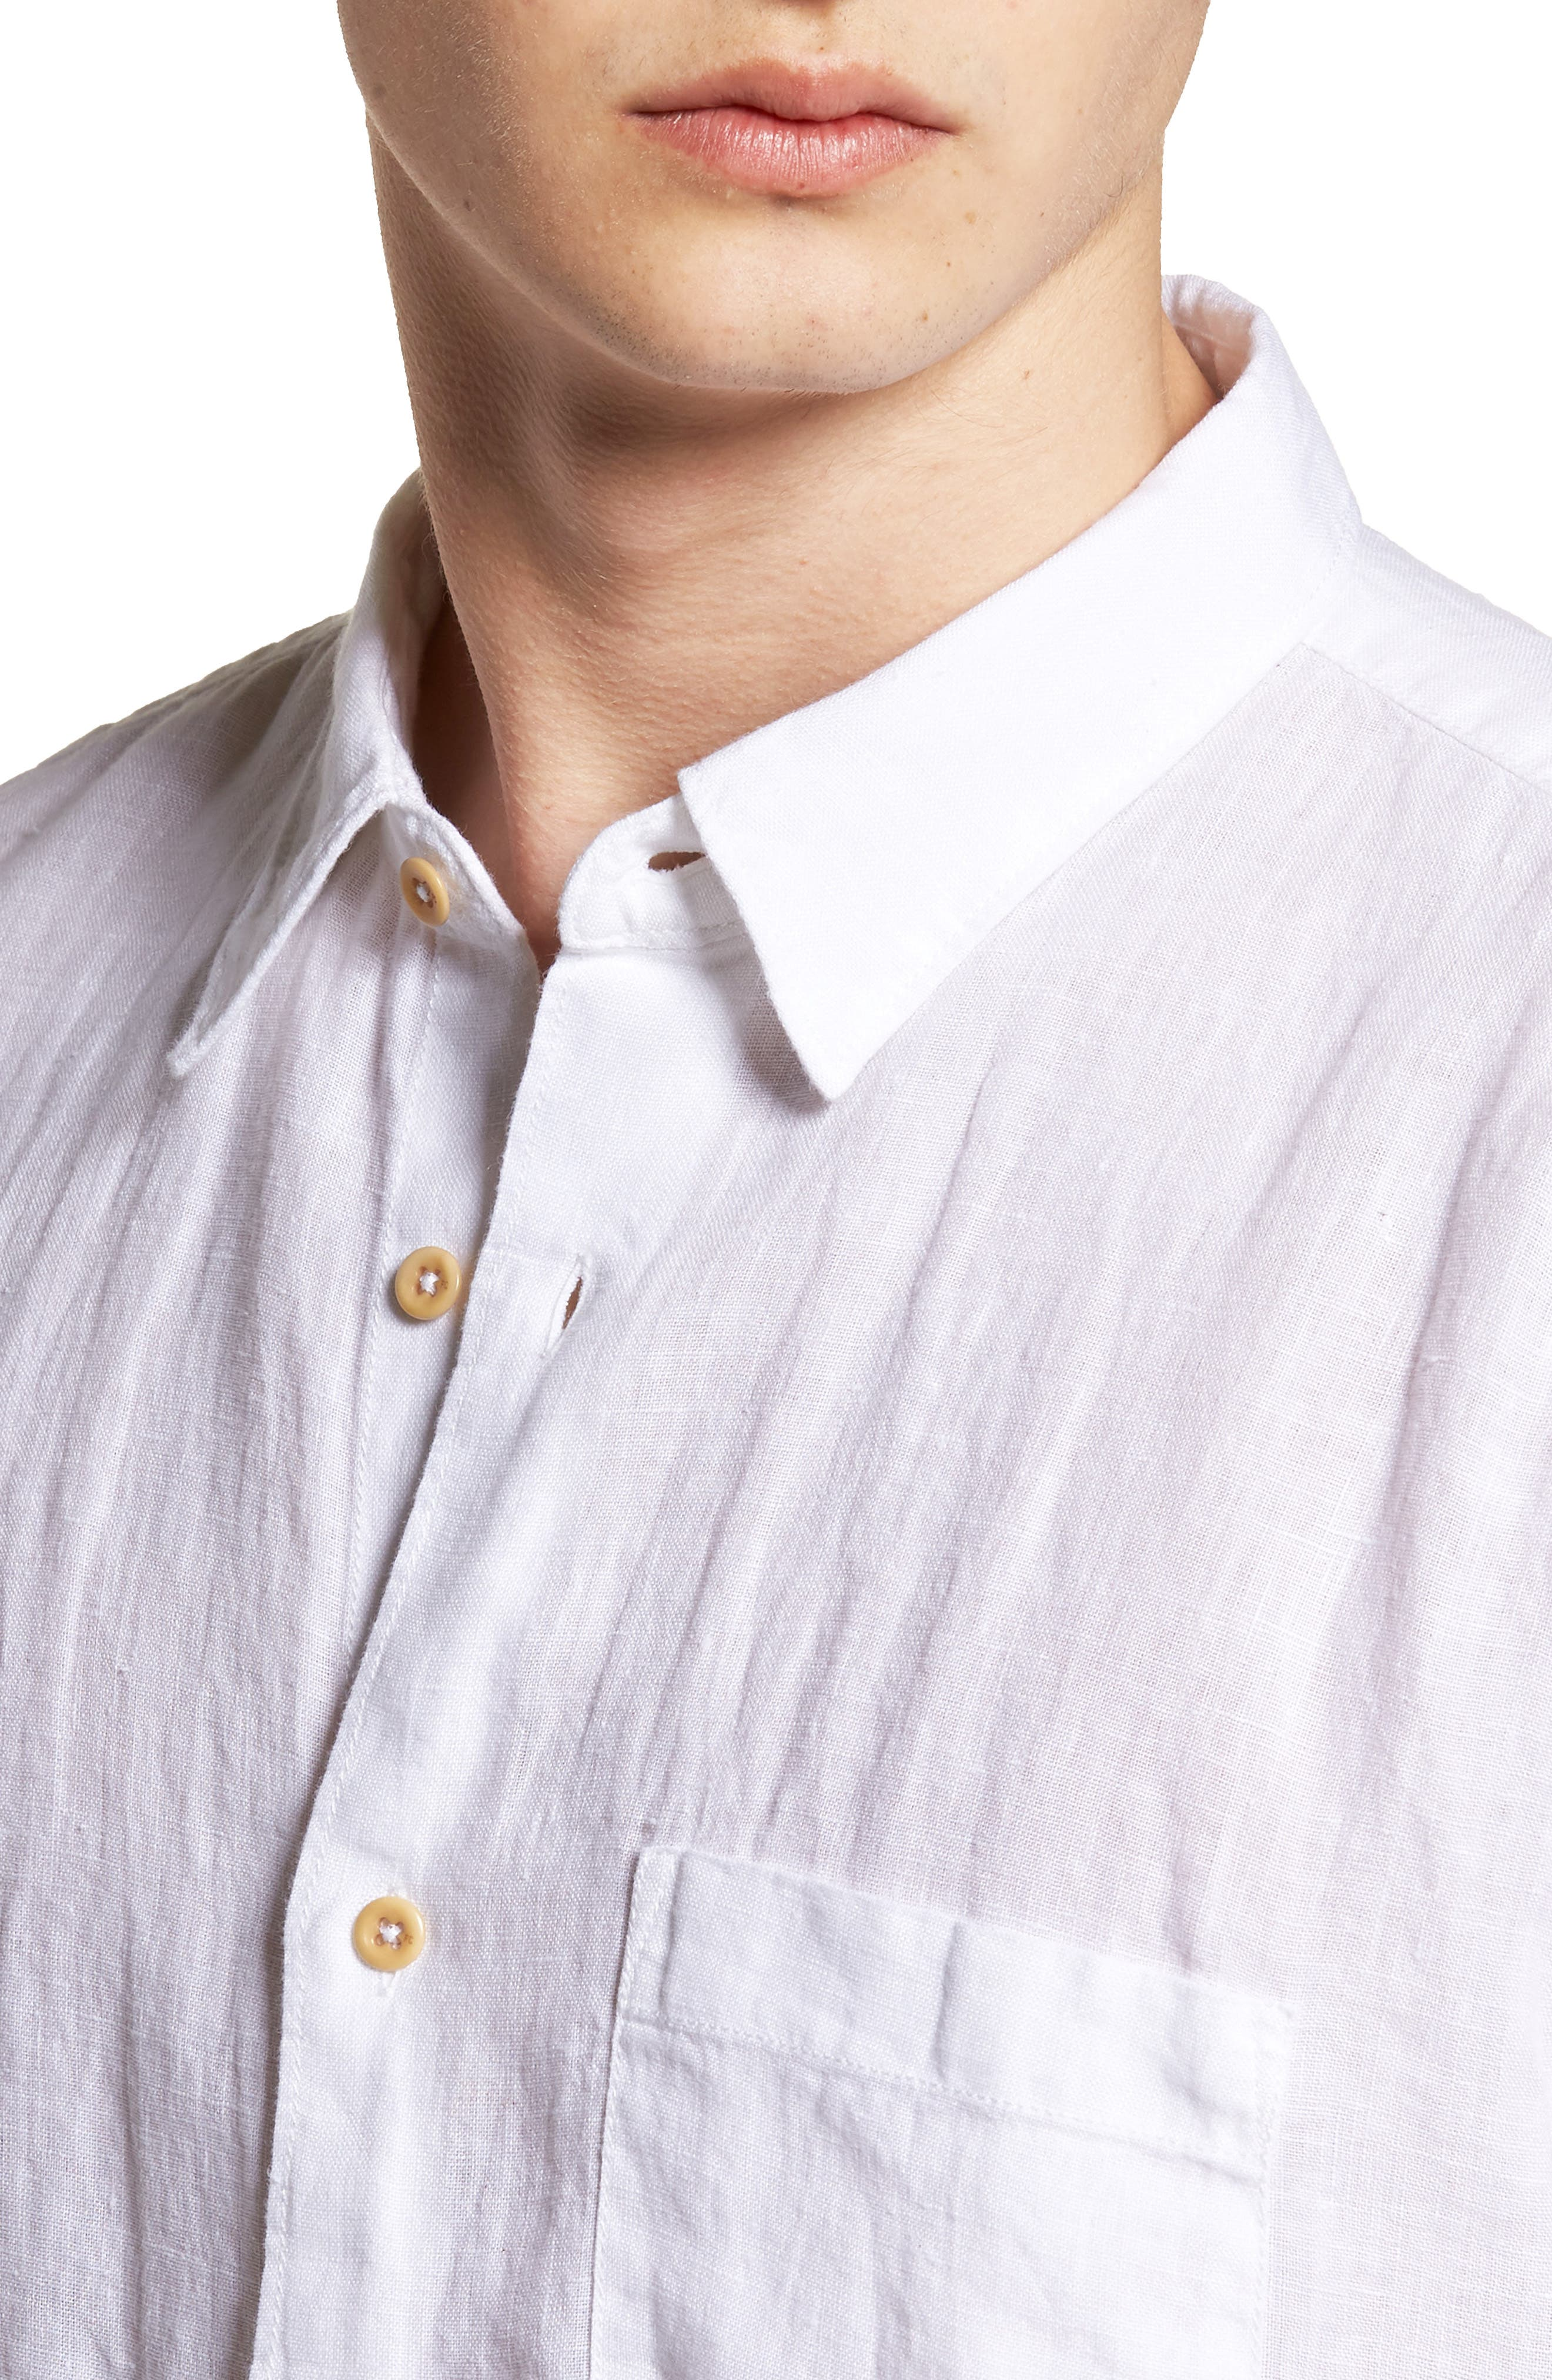 Relaxed Fit Solid Linen Sport Shirt,                             Alternate thumbnail 4, color,                             100